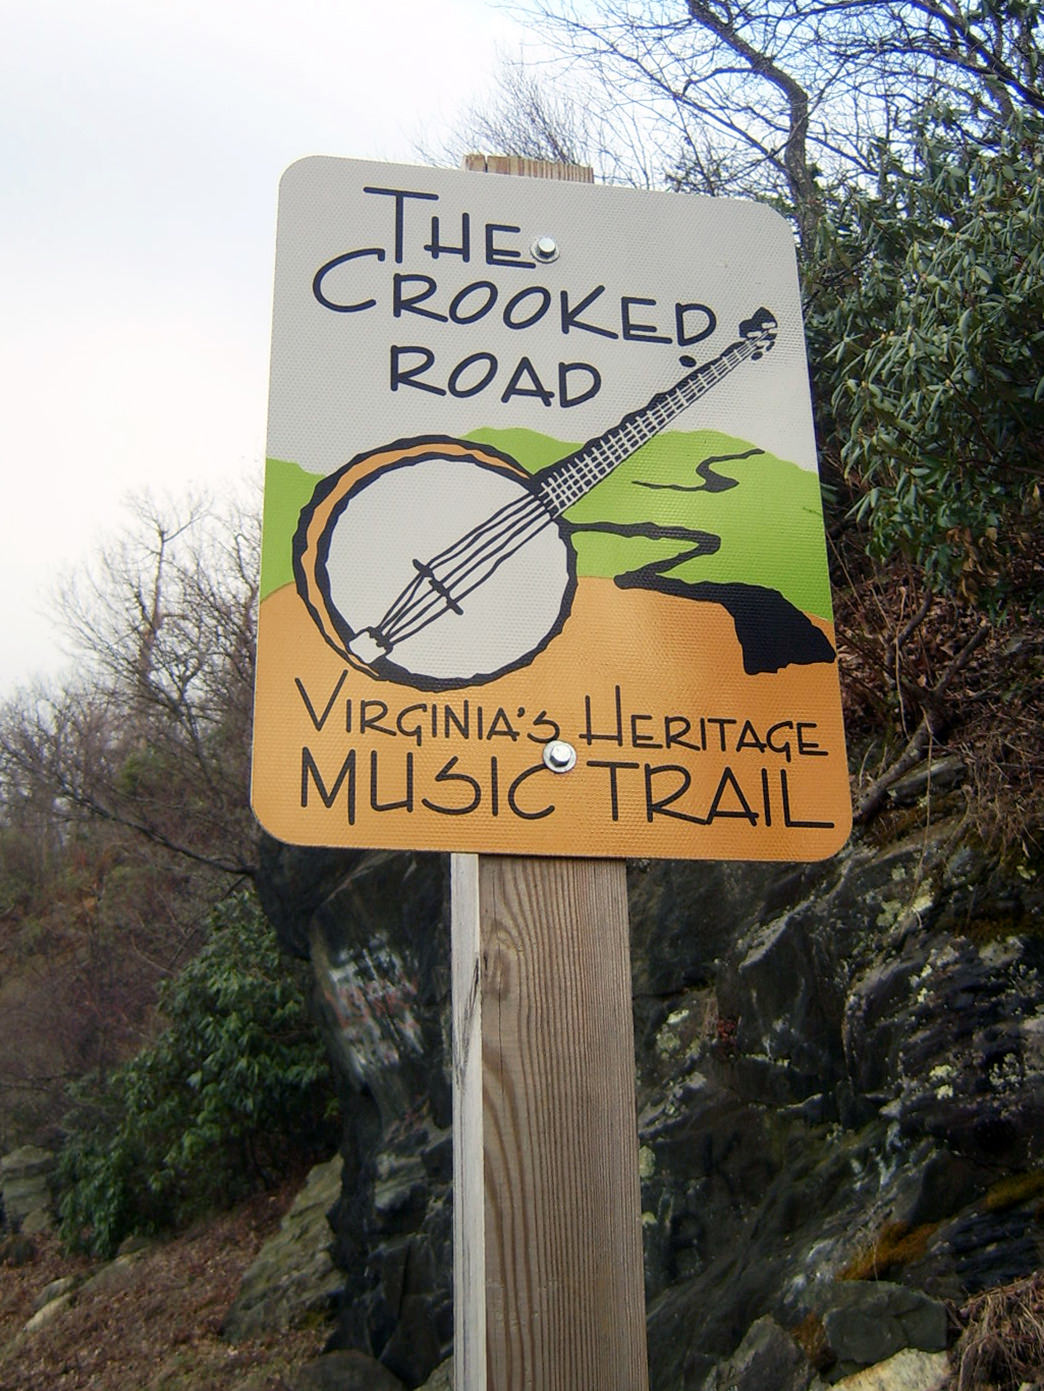 The Crooked Road Music Trail is a 330-mile driving route connecting local artists, exhibits, and performing venues.